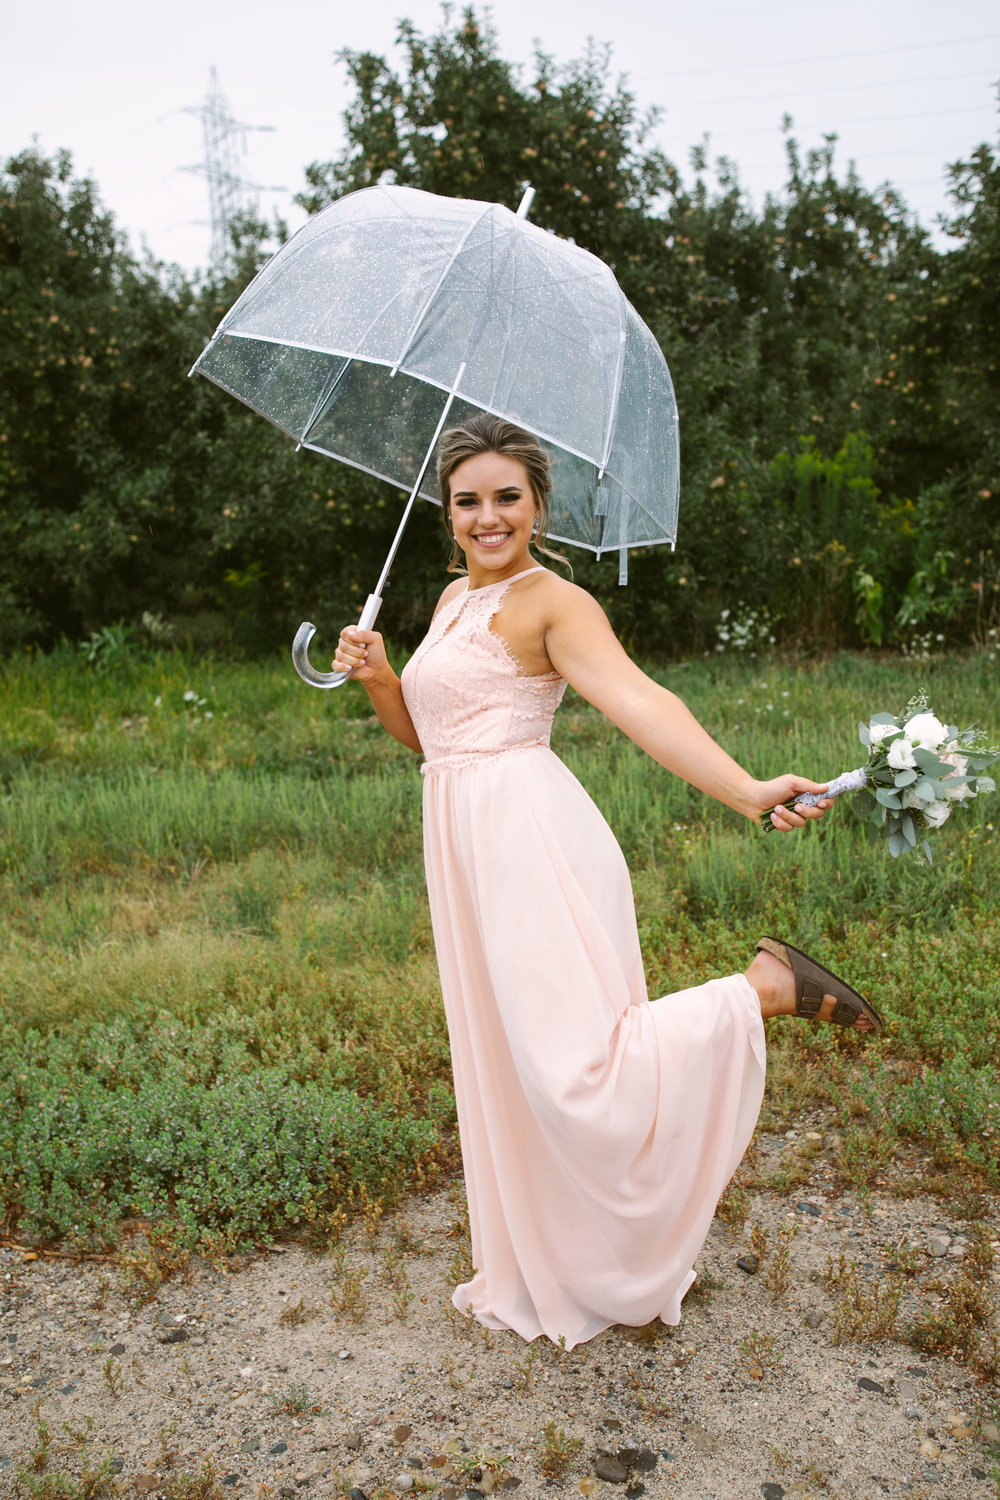 grandrapidswedding_grandrapids_grandrapidsweddingphotographer_countrywedding_orchardwedding_rainyweddingday_rain_summerwedding_grandrapidsphotographer_luna_lunawedding_jessicadarling_jdarlingphoto_ericaandaj012.jpg